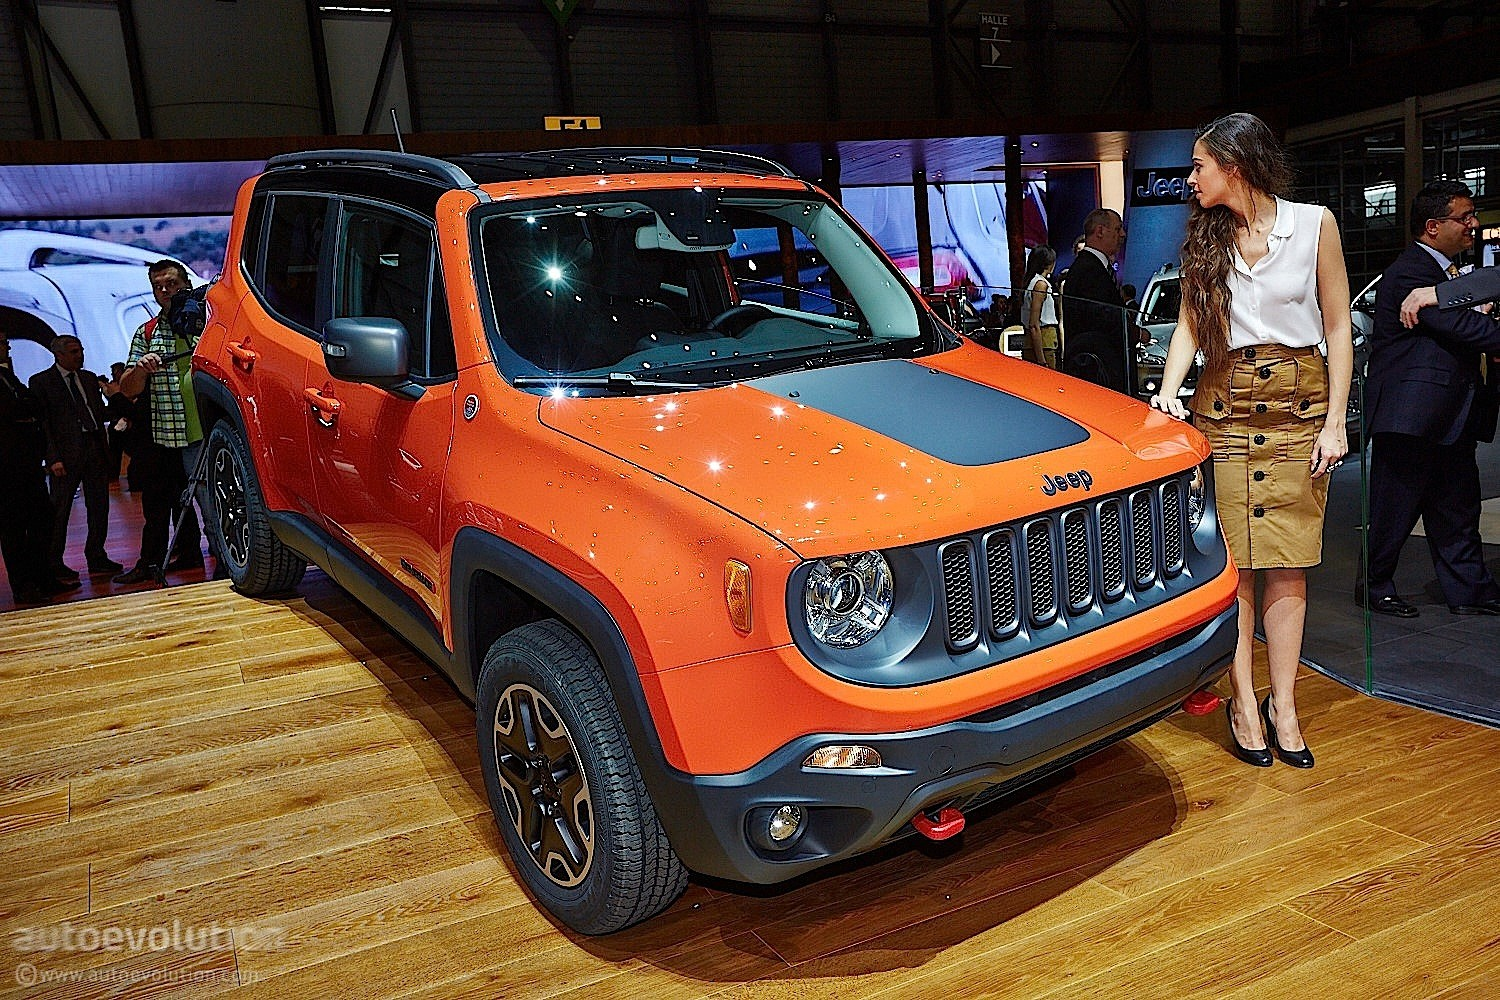 2015 jeep renegade ($17,995) is more expensive than the 2015 jeep